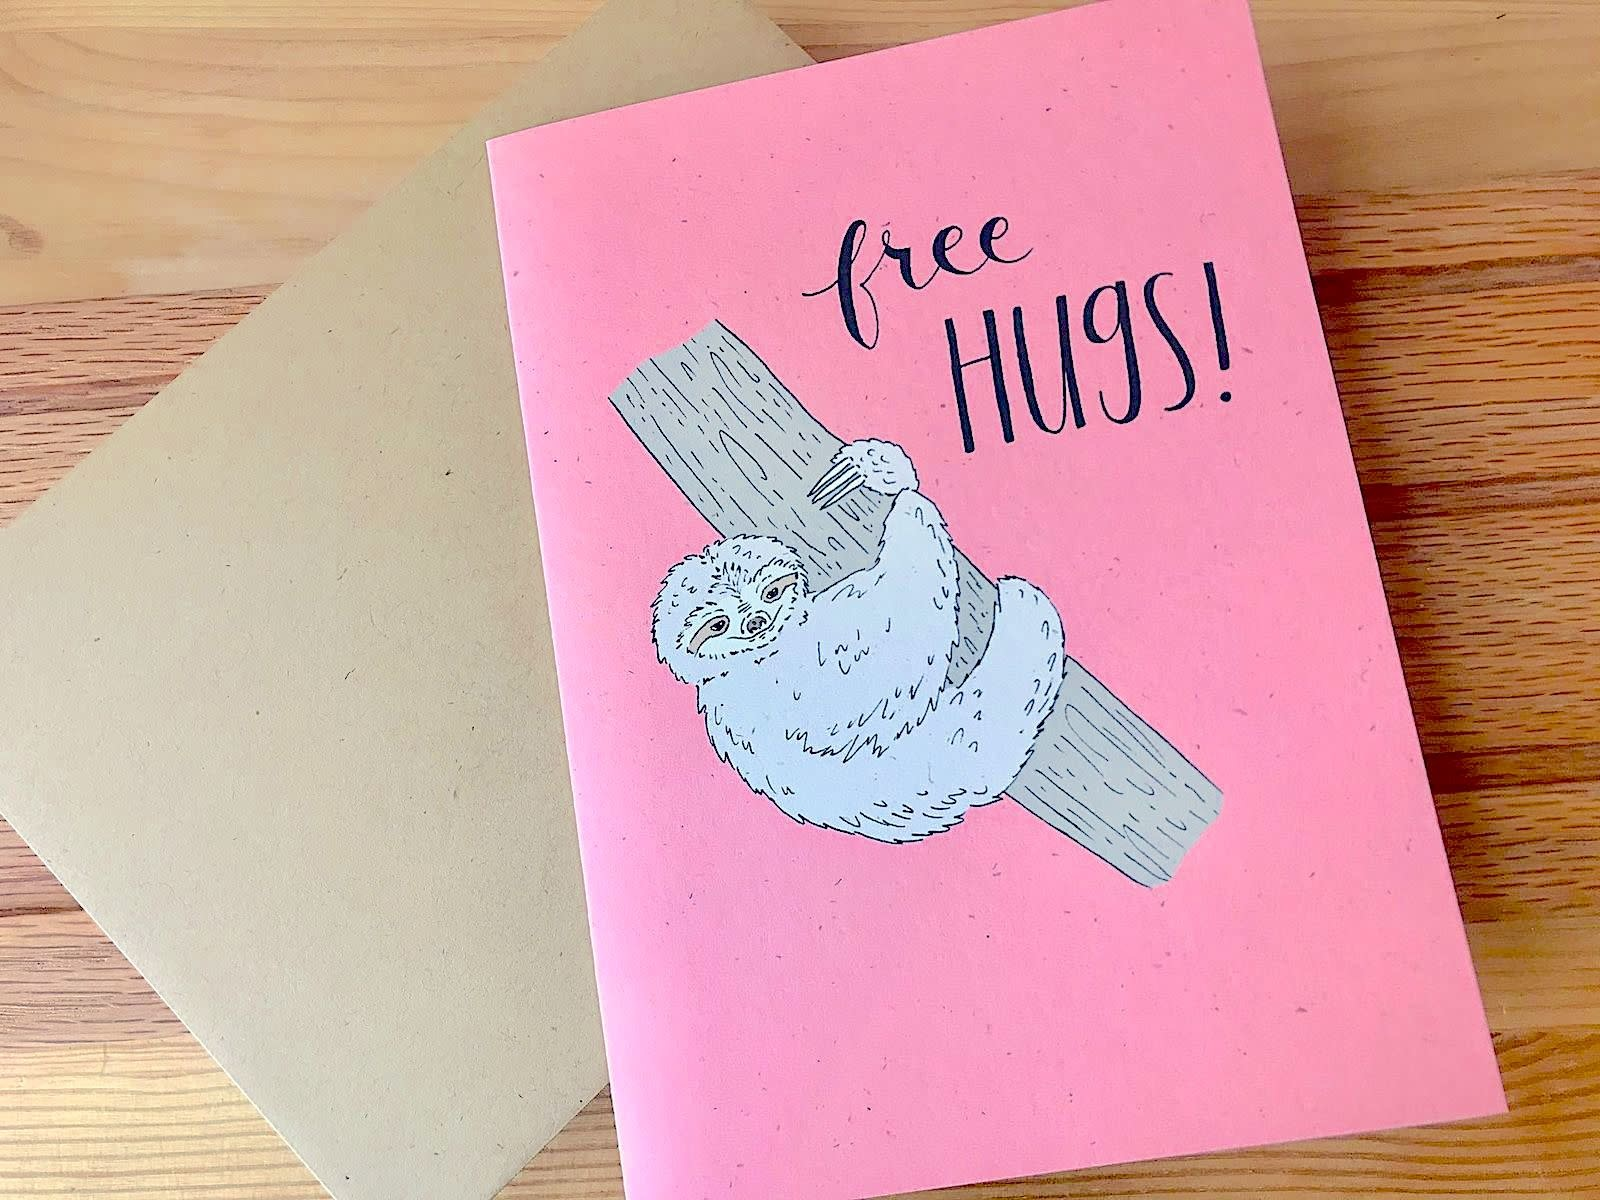 Champaign Paper Free Hugs Sloth Greeting Card